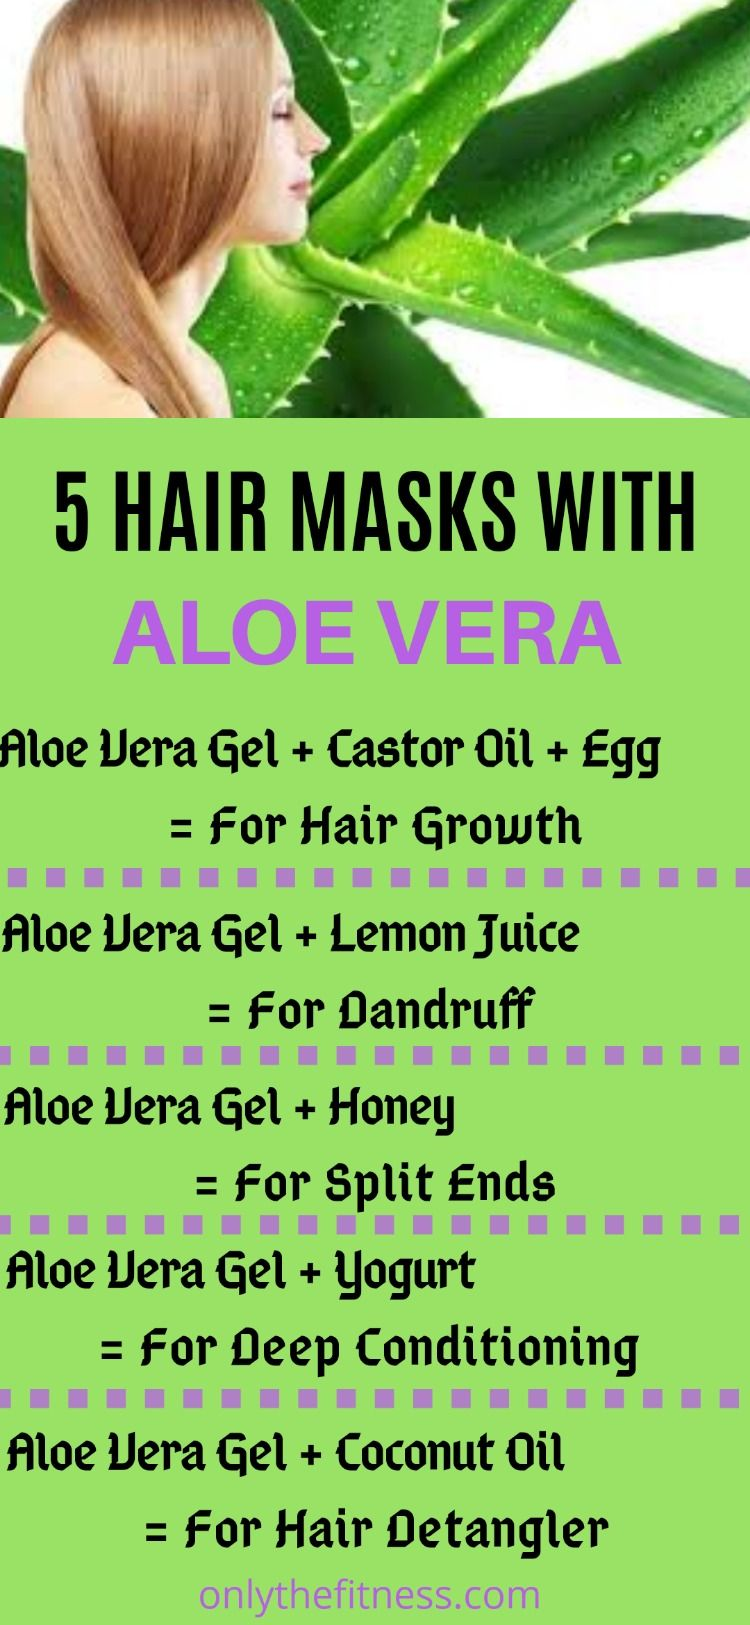 Aloe Vera Hair Mask How To Use Aloe Vera Gel For Hair Aloe Vera